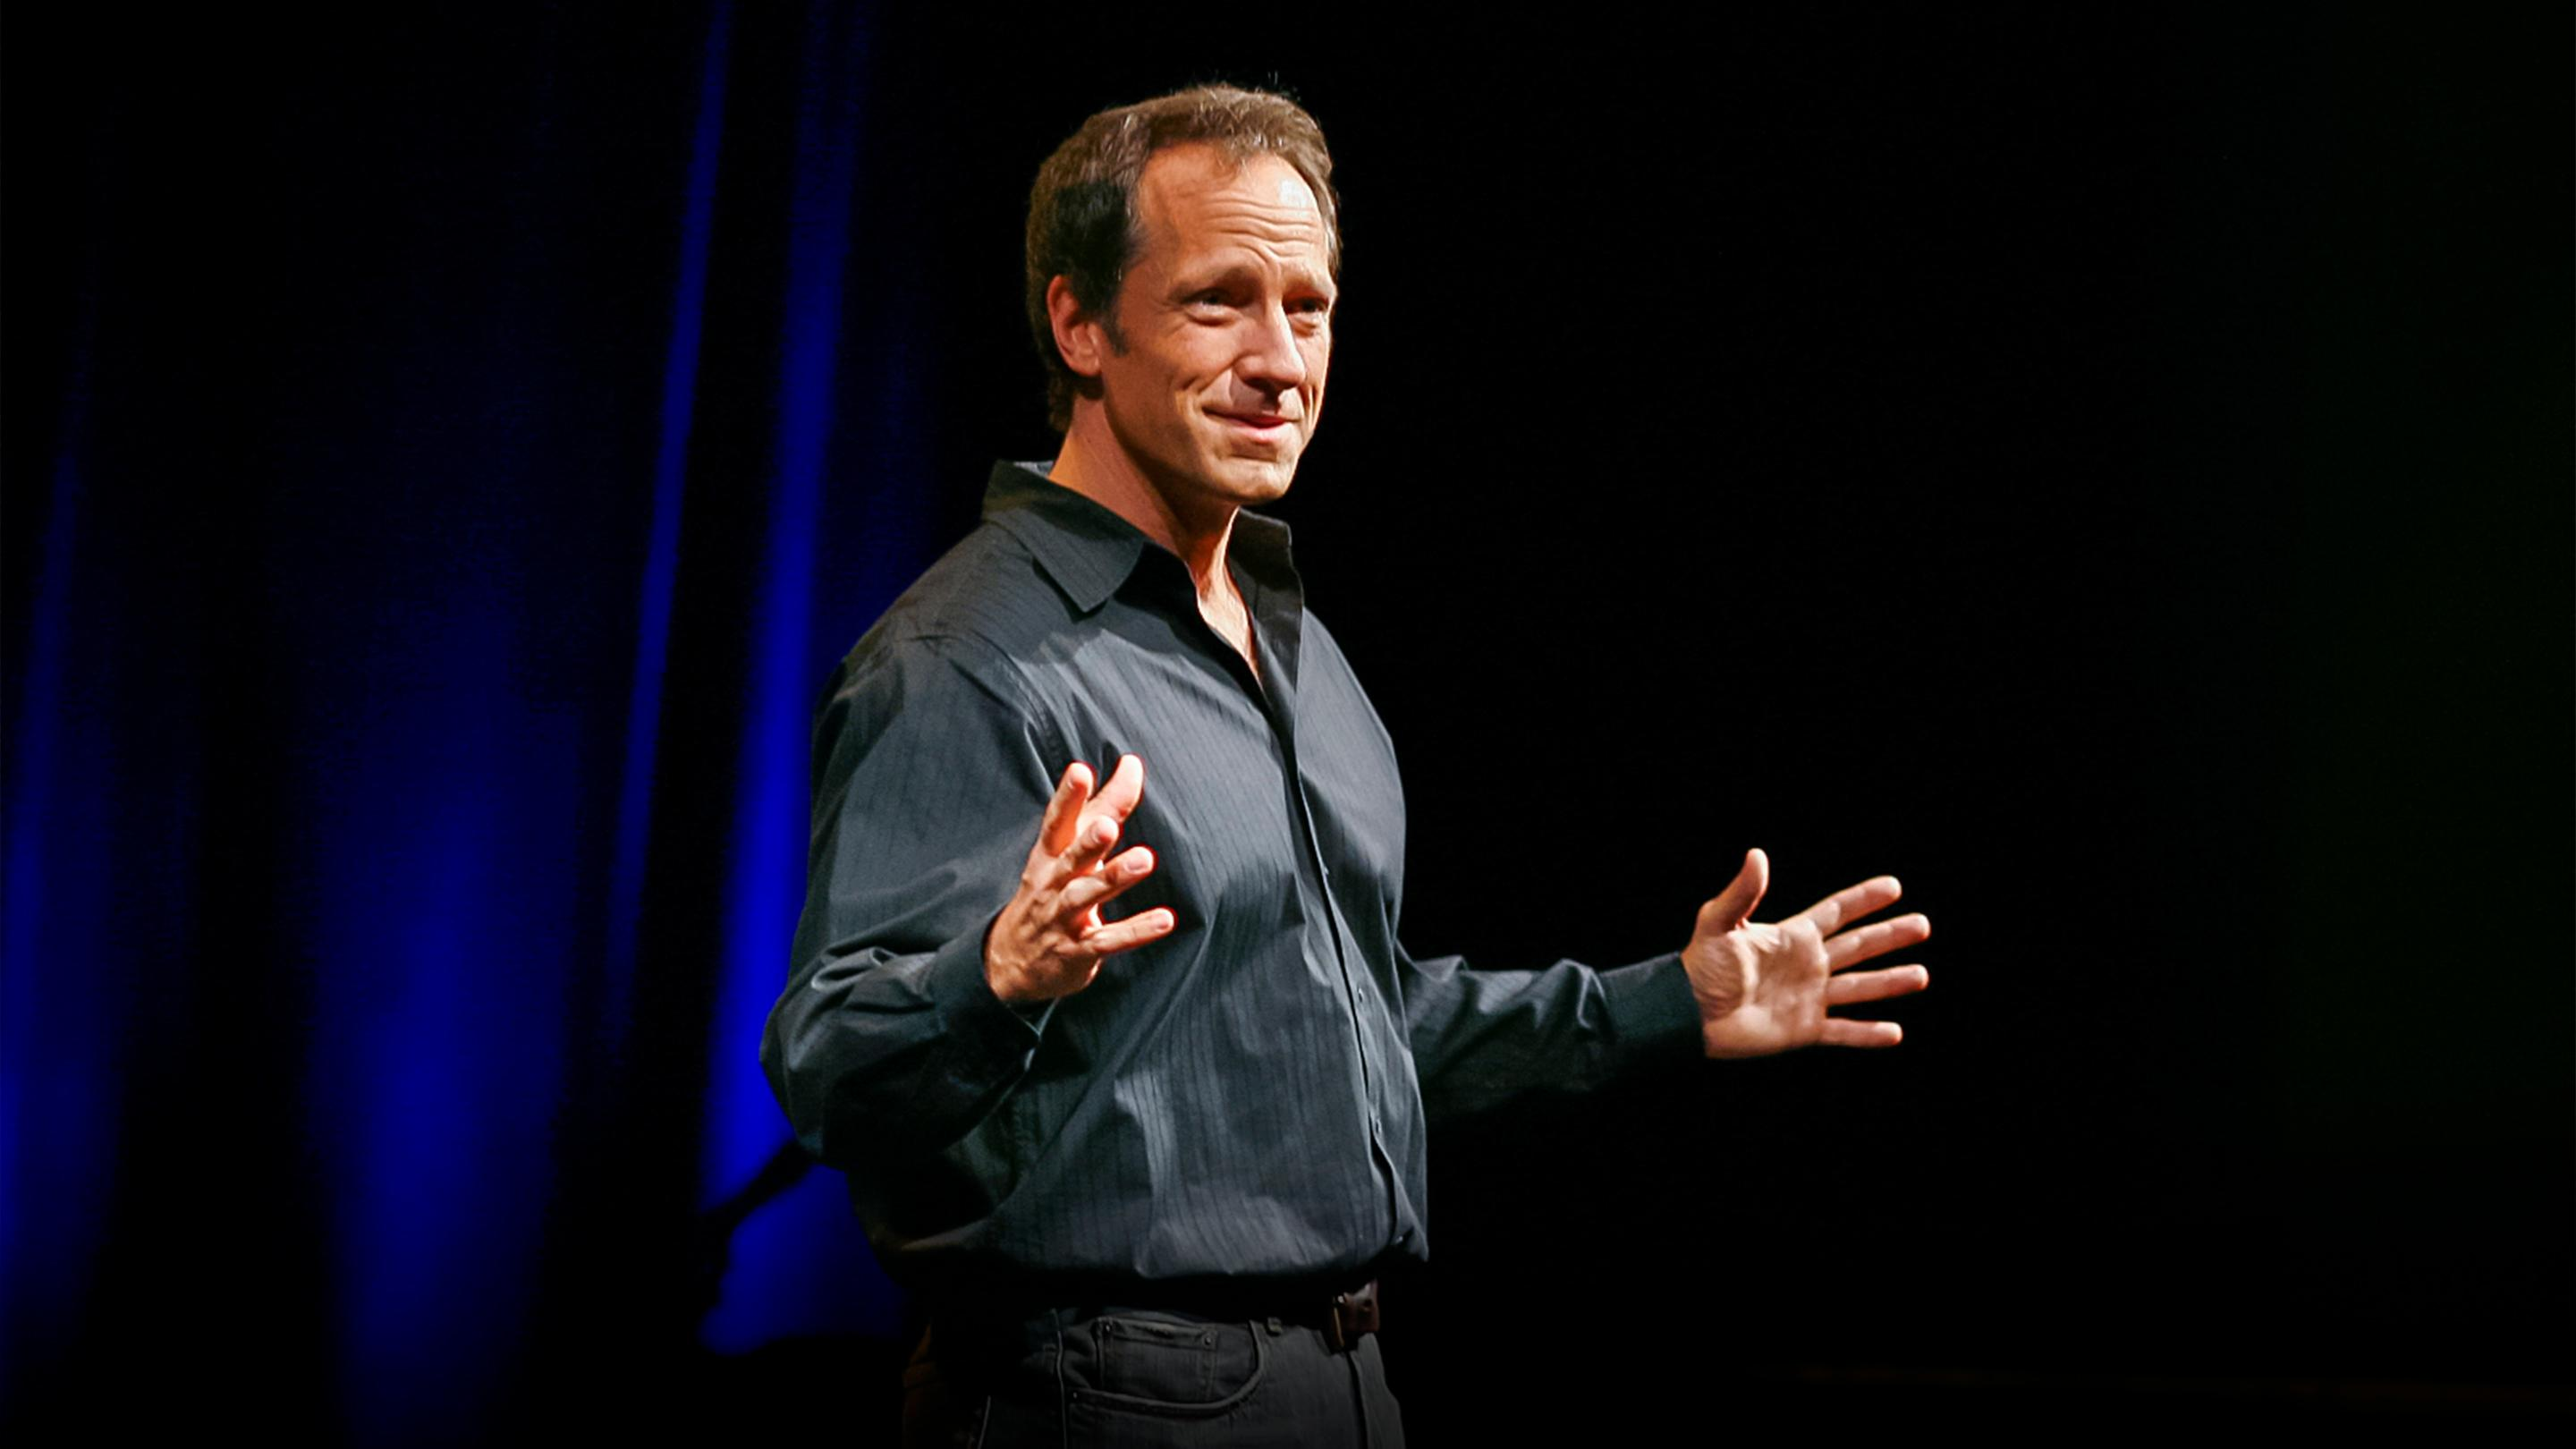 Mike rowe ted talk